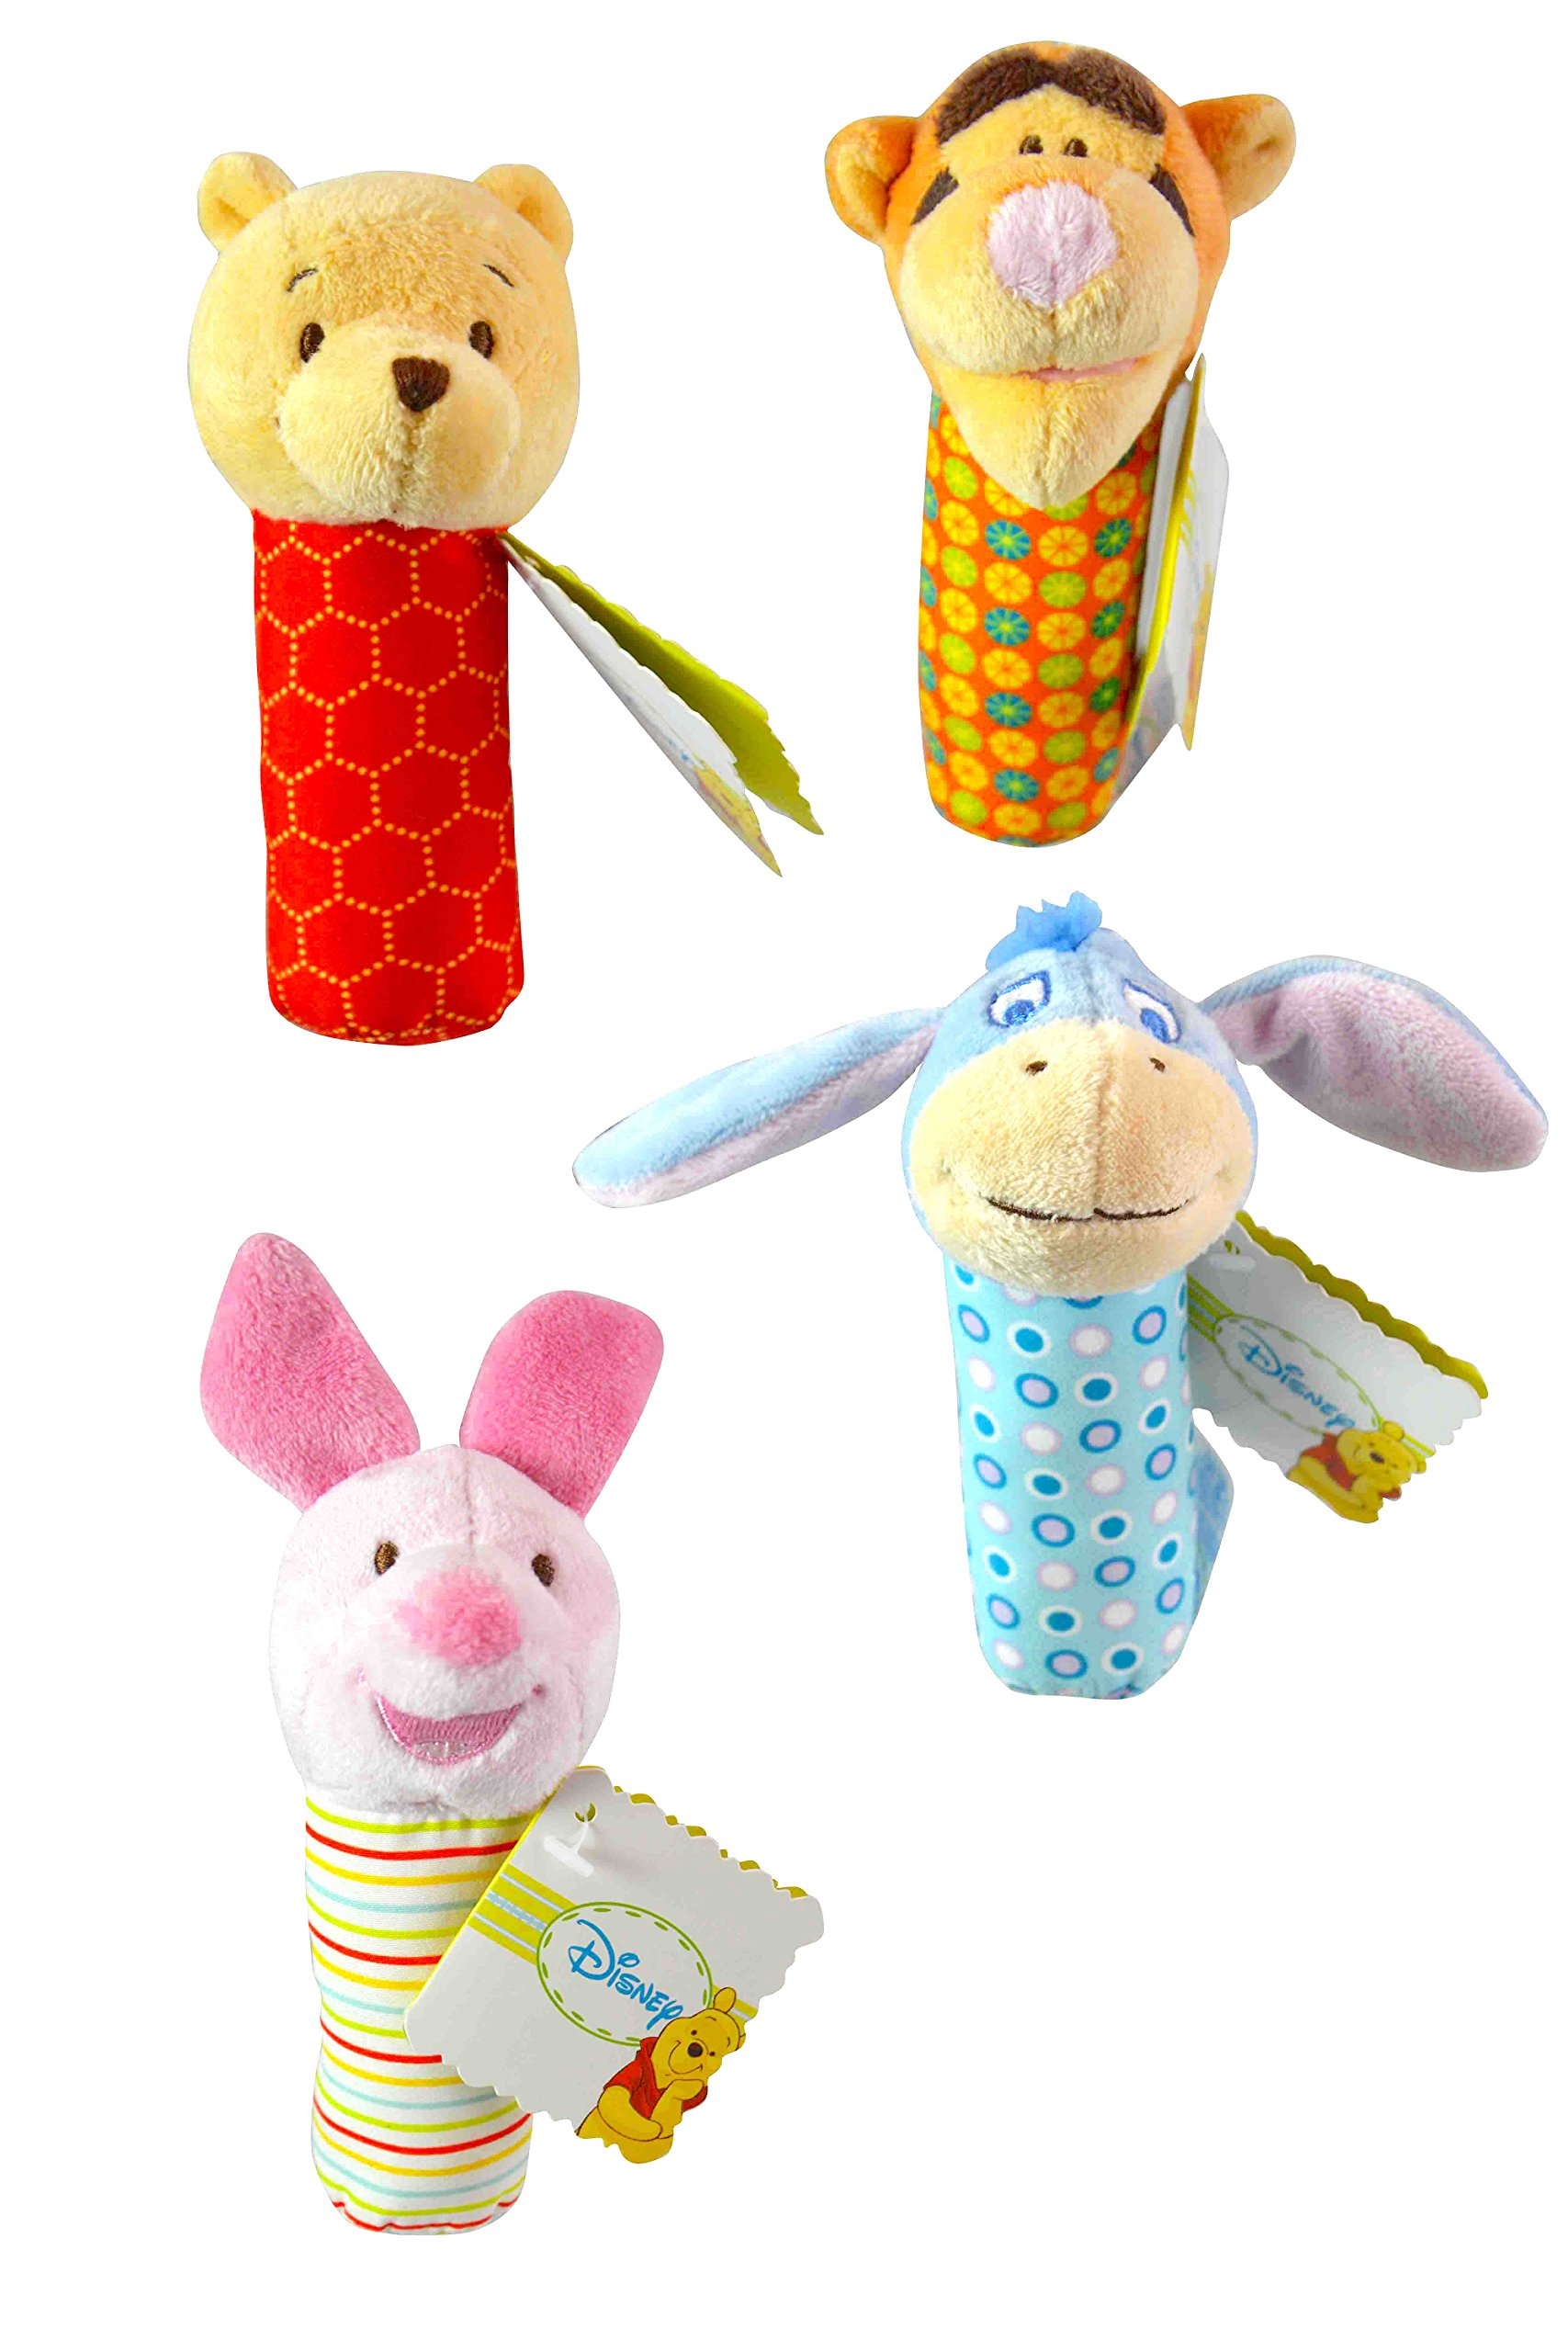 Disney Winnie the Pooh 4-Piece Plush Rattle Stick Collection- Pooh, Tigger, Eeyore, Piglet